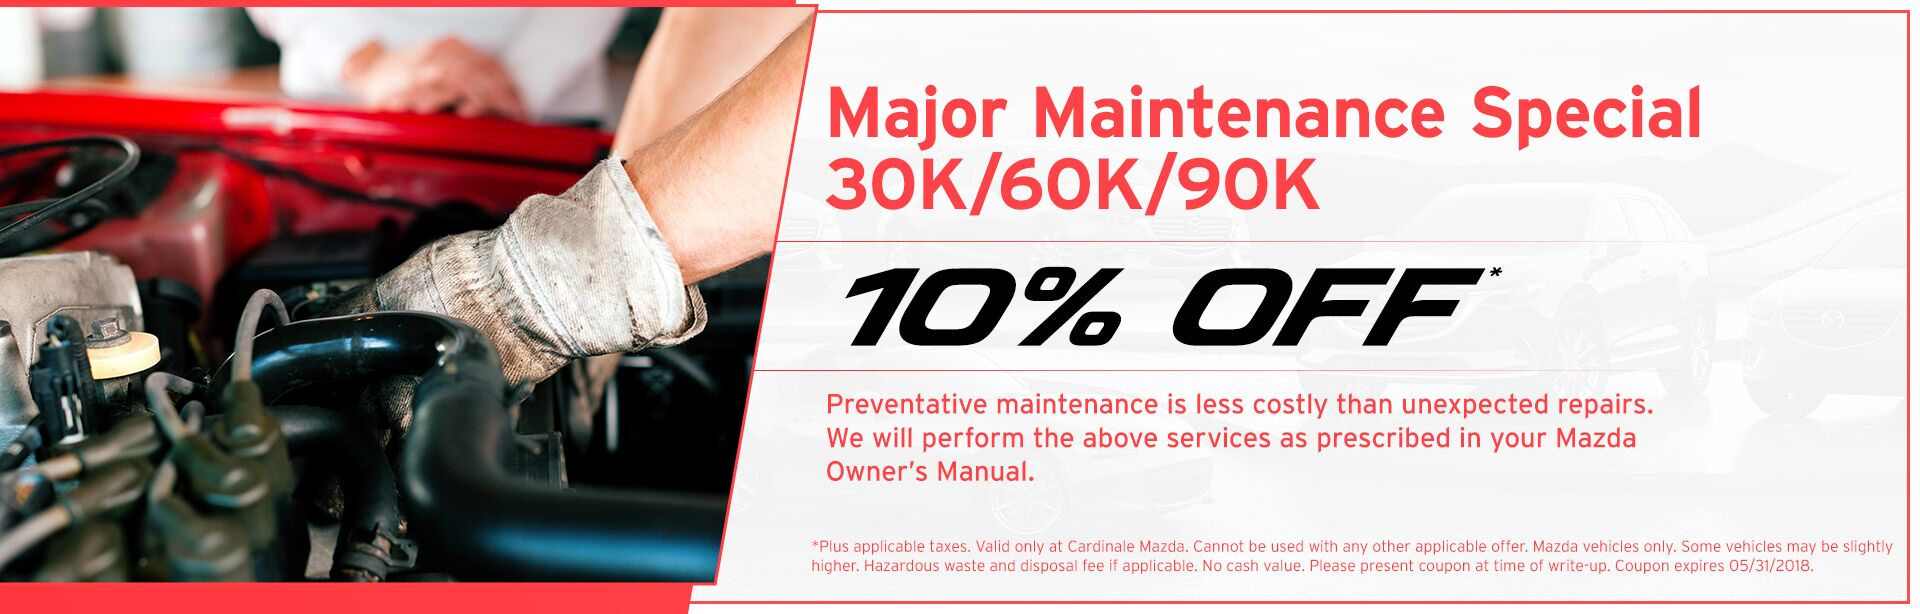 Major Maintenance Special